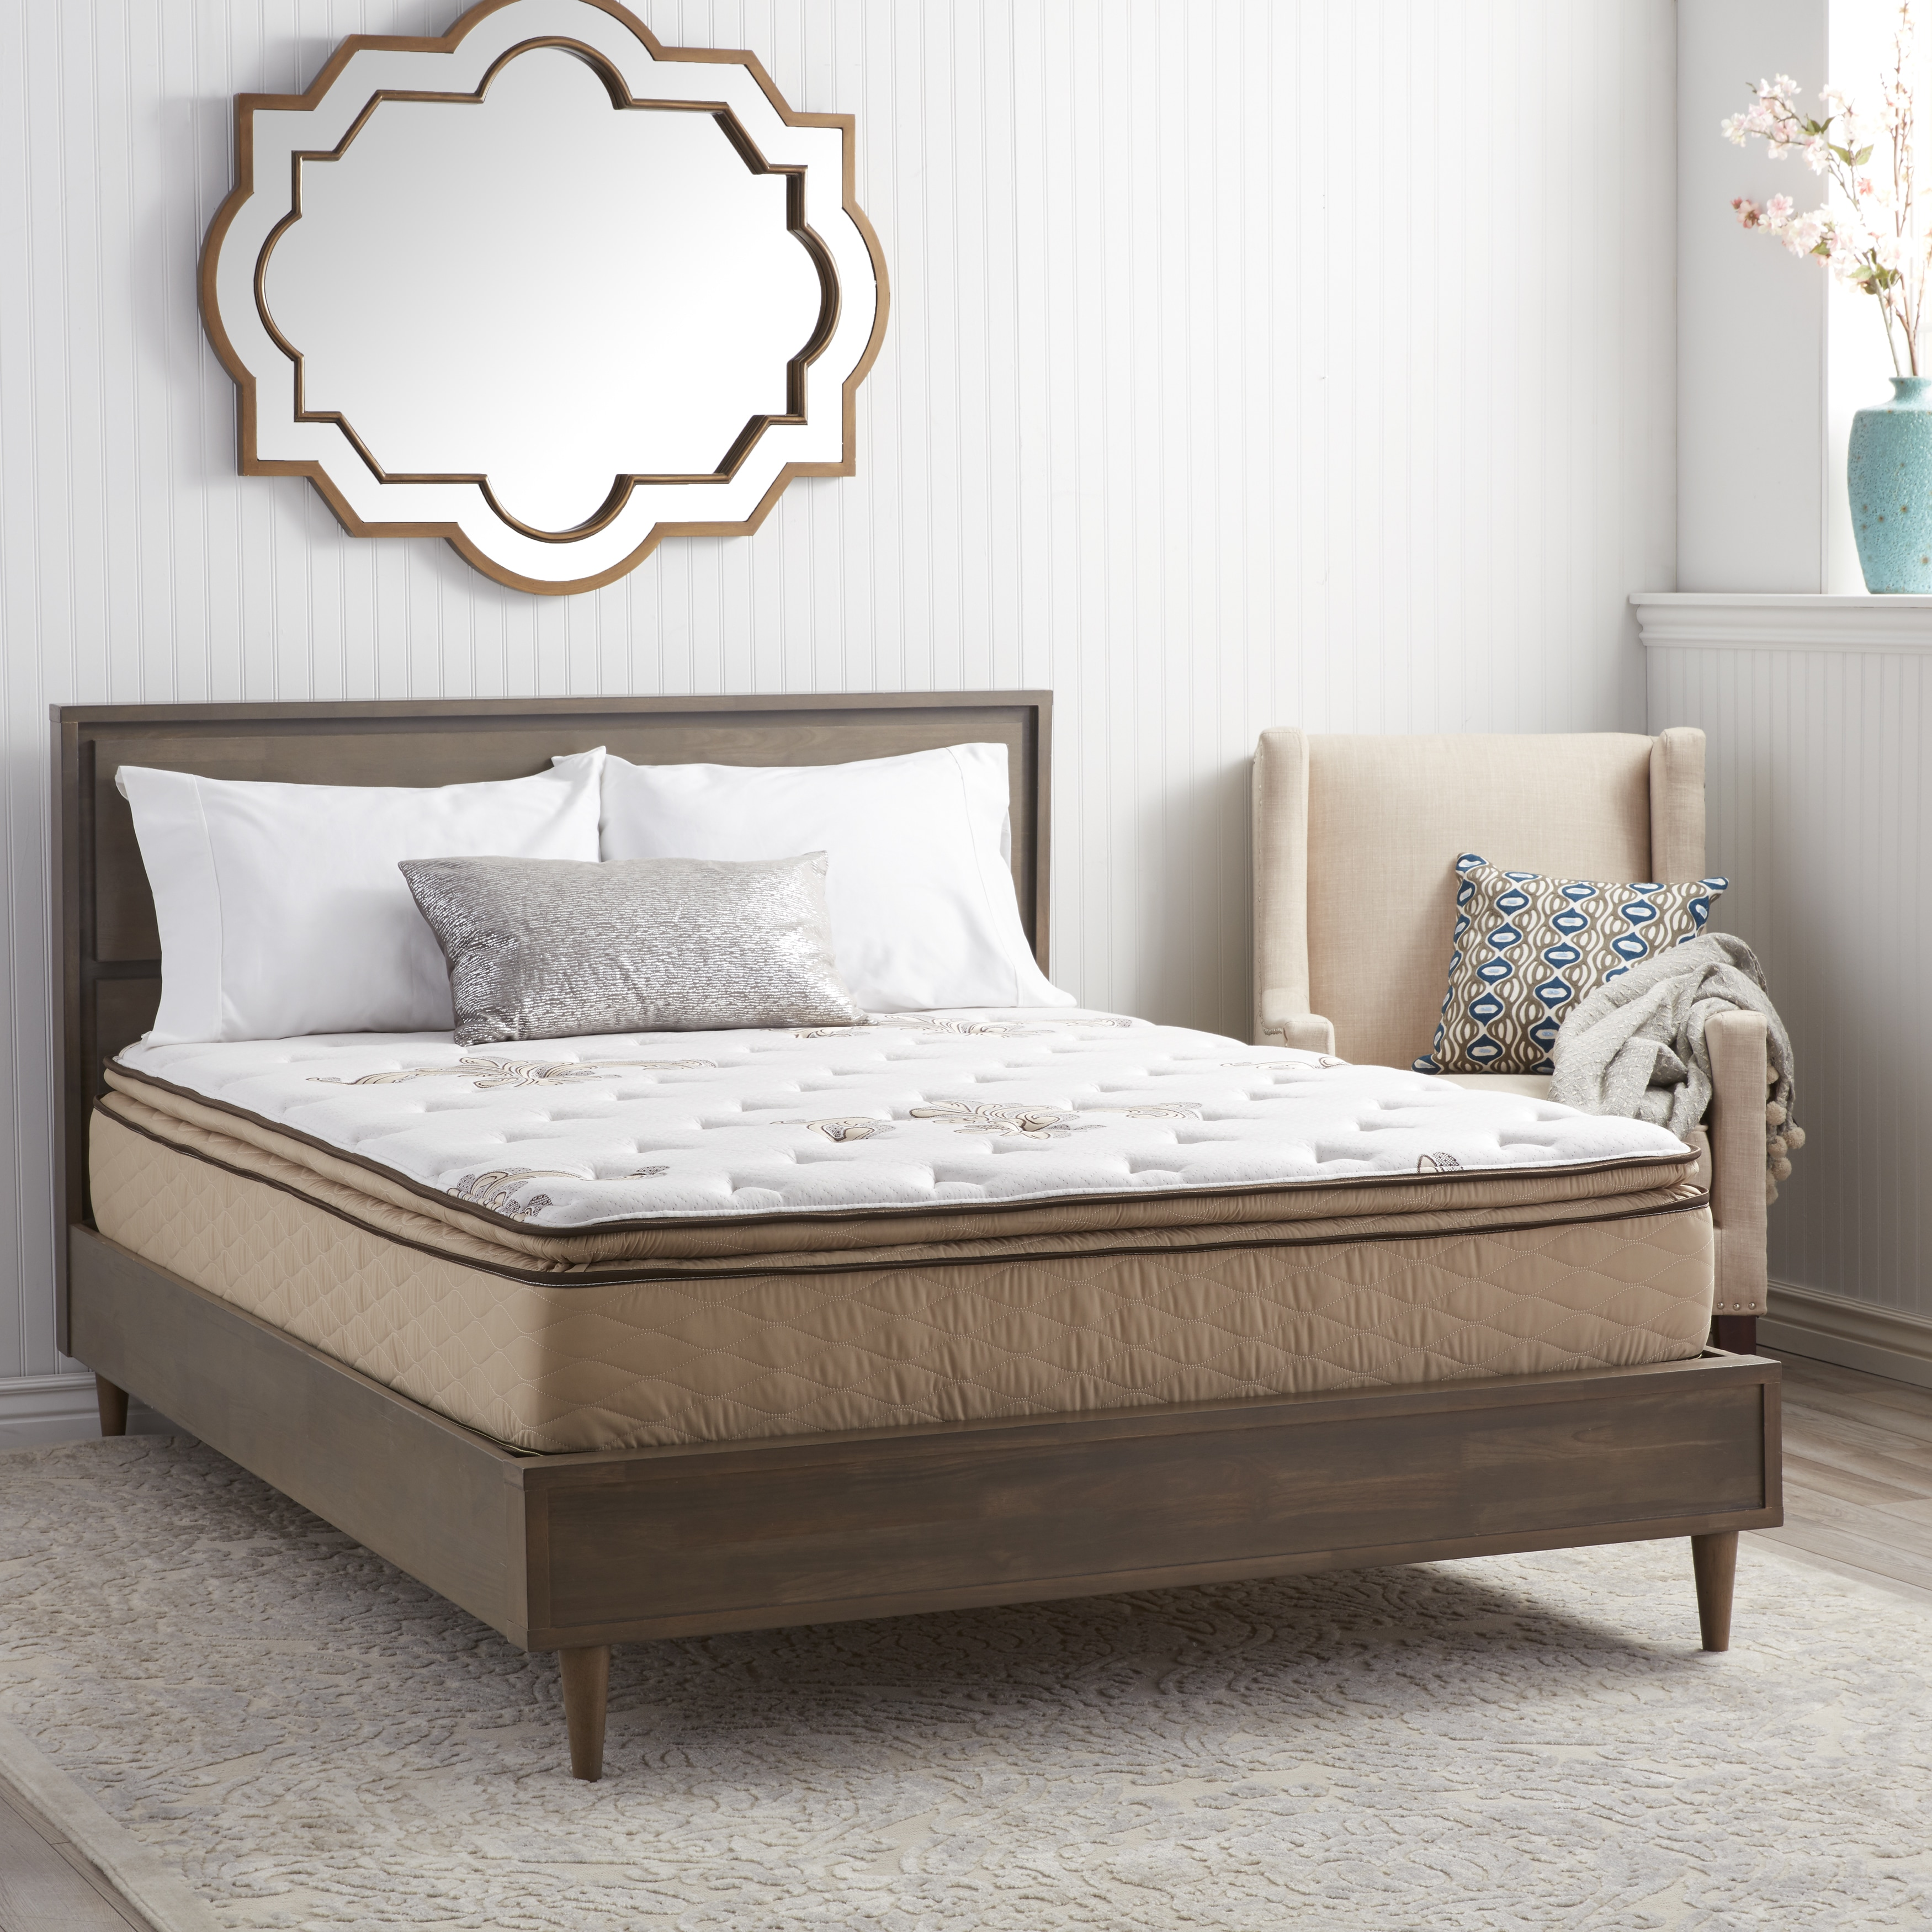 twin pillowp size mattress sheets design of tallahassee pillow for top full pad smart set image